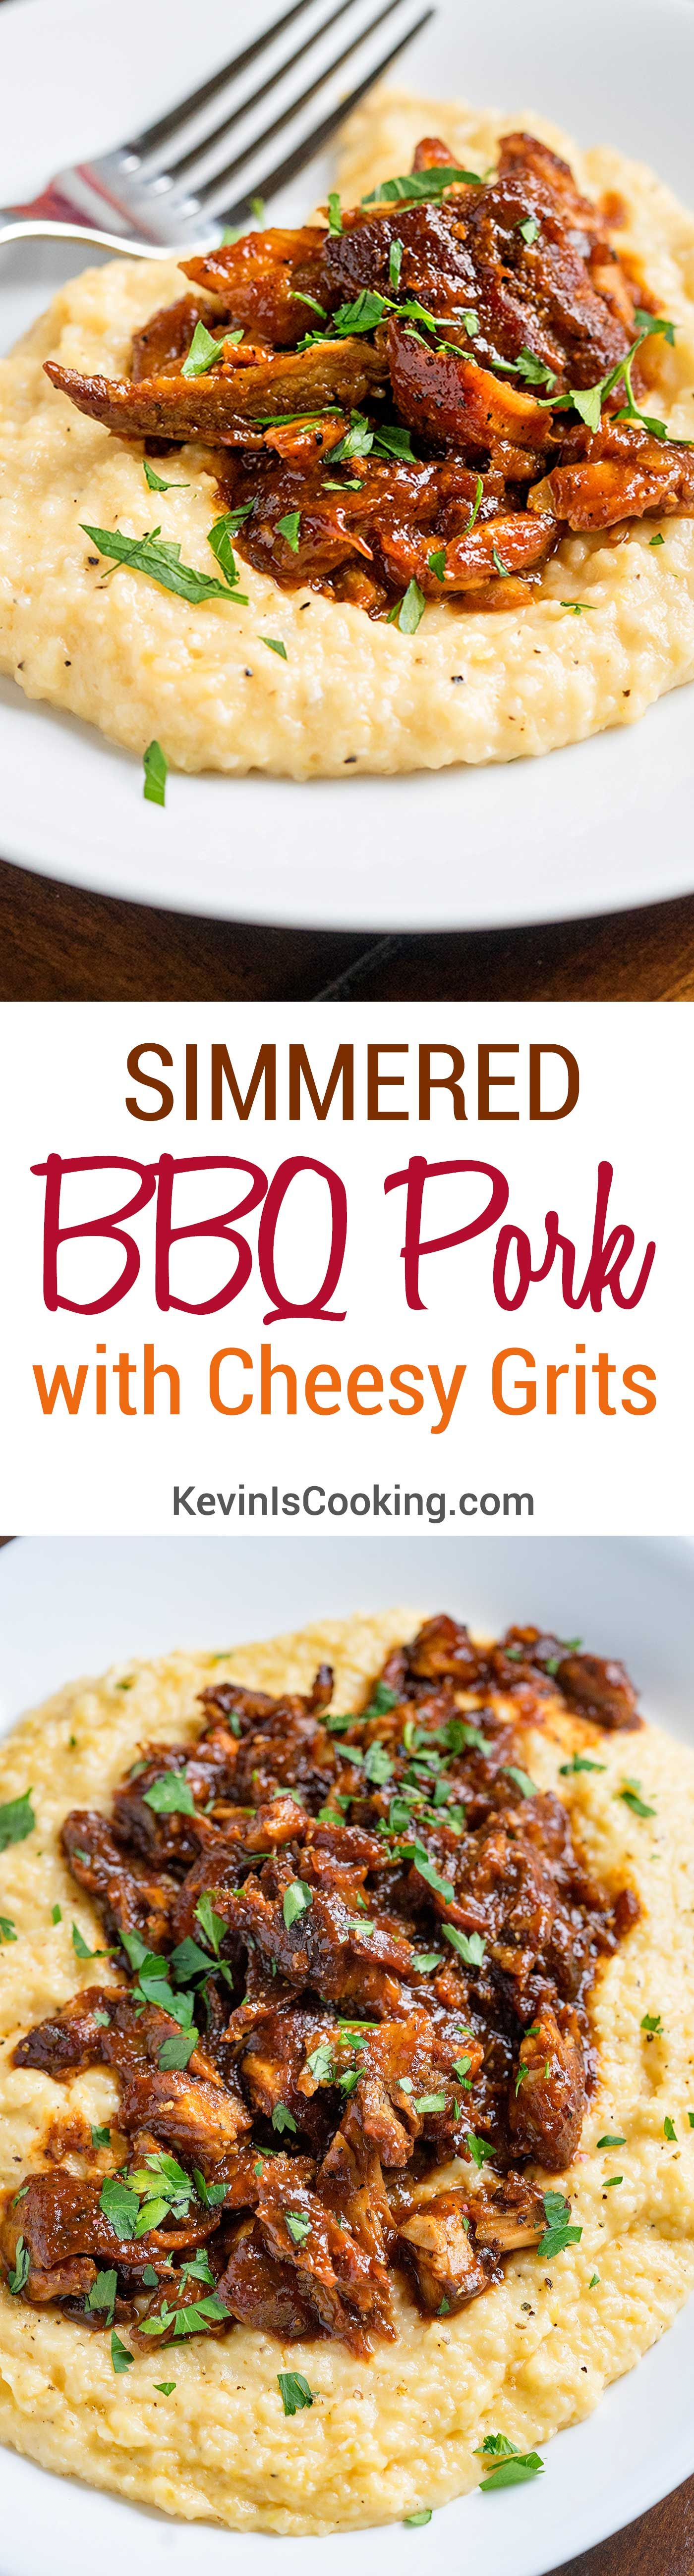 Bbq Pork With Cheesy Grits Keviniscooking